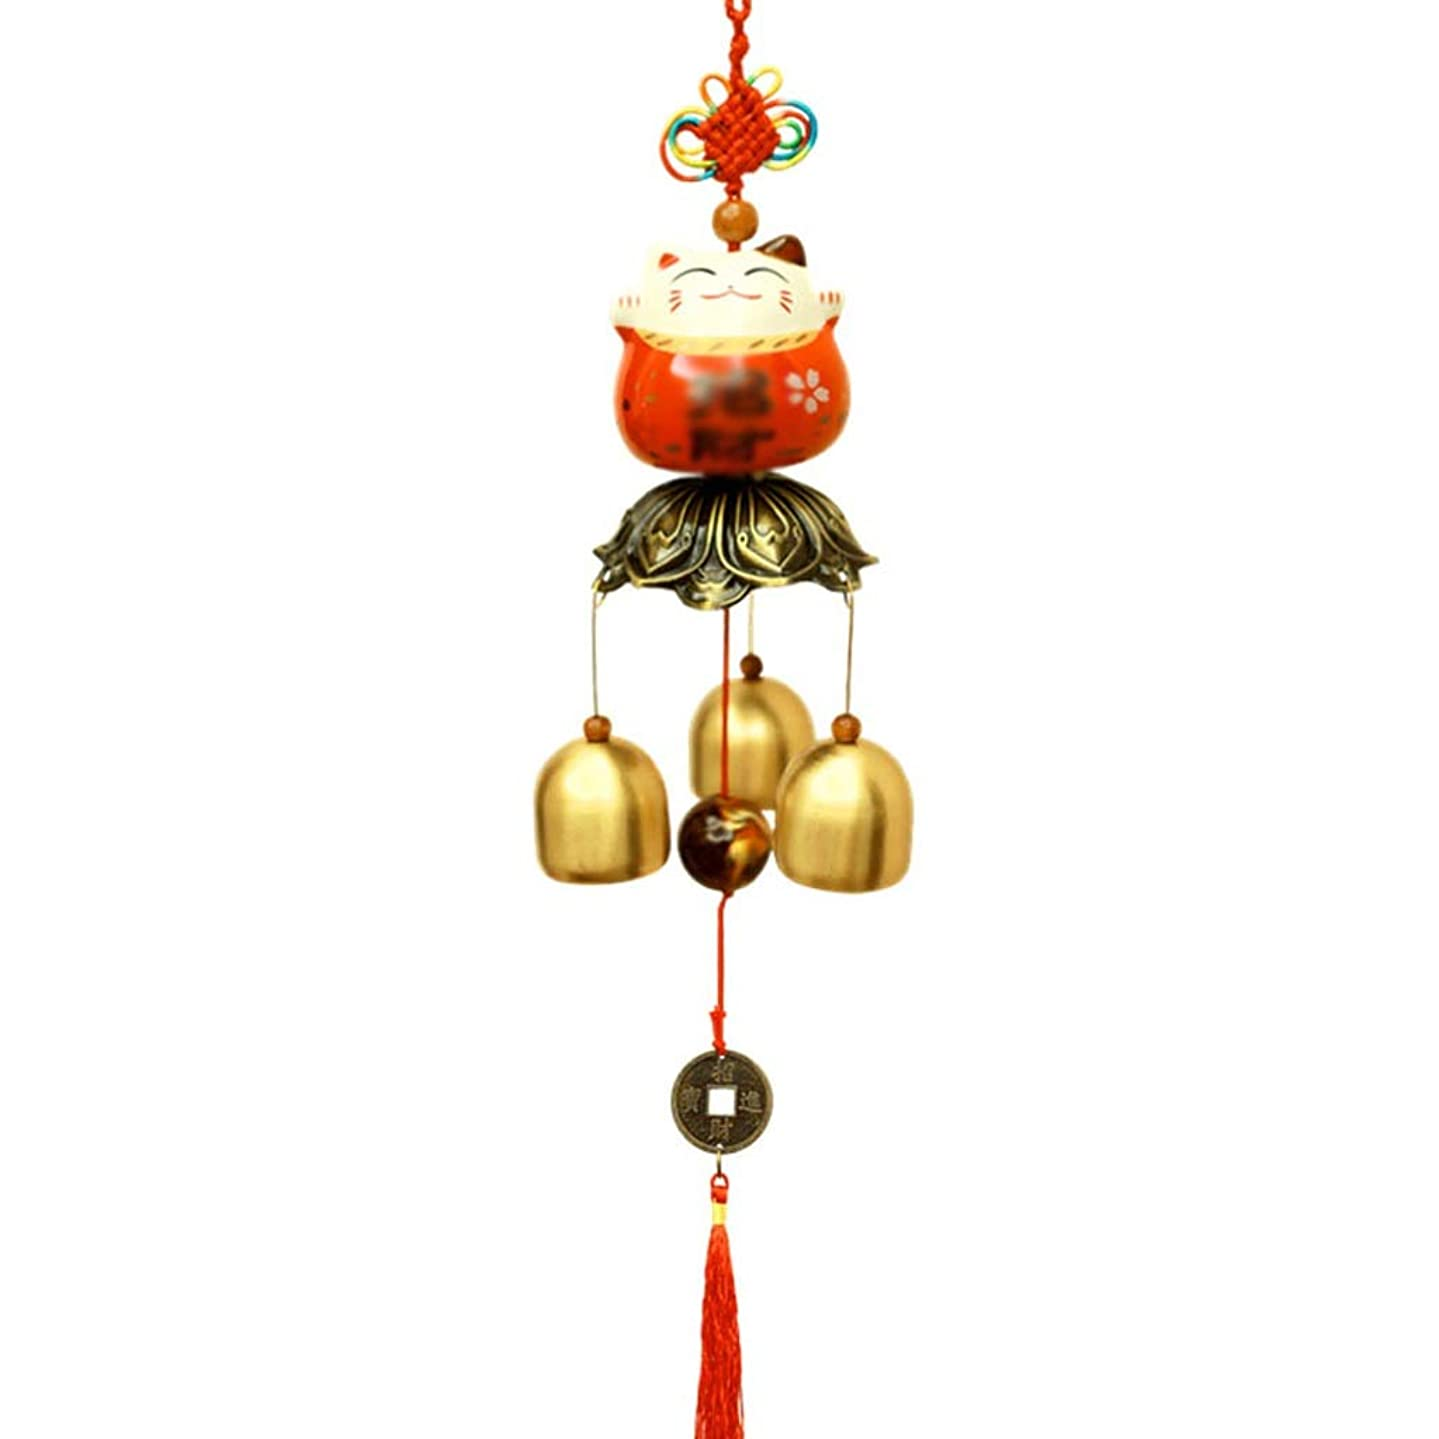 Outdoors Wind Chimes Metal Wind Chime Shop Door Bell Hanging Door Decoration Copper Bells Pendant Creative Gifts Home Decoration Home Garden Décor Wind Chimes (Color : Red)